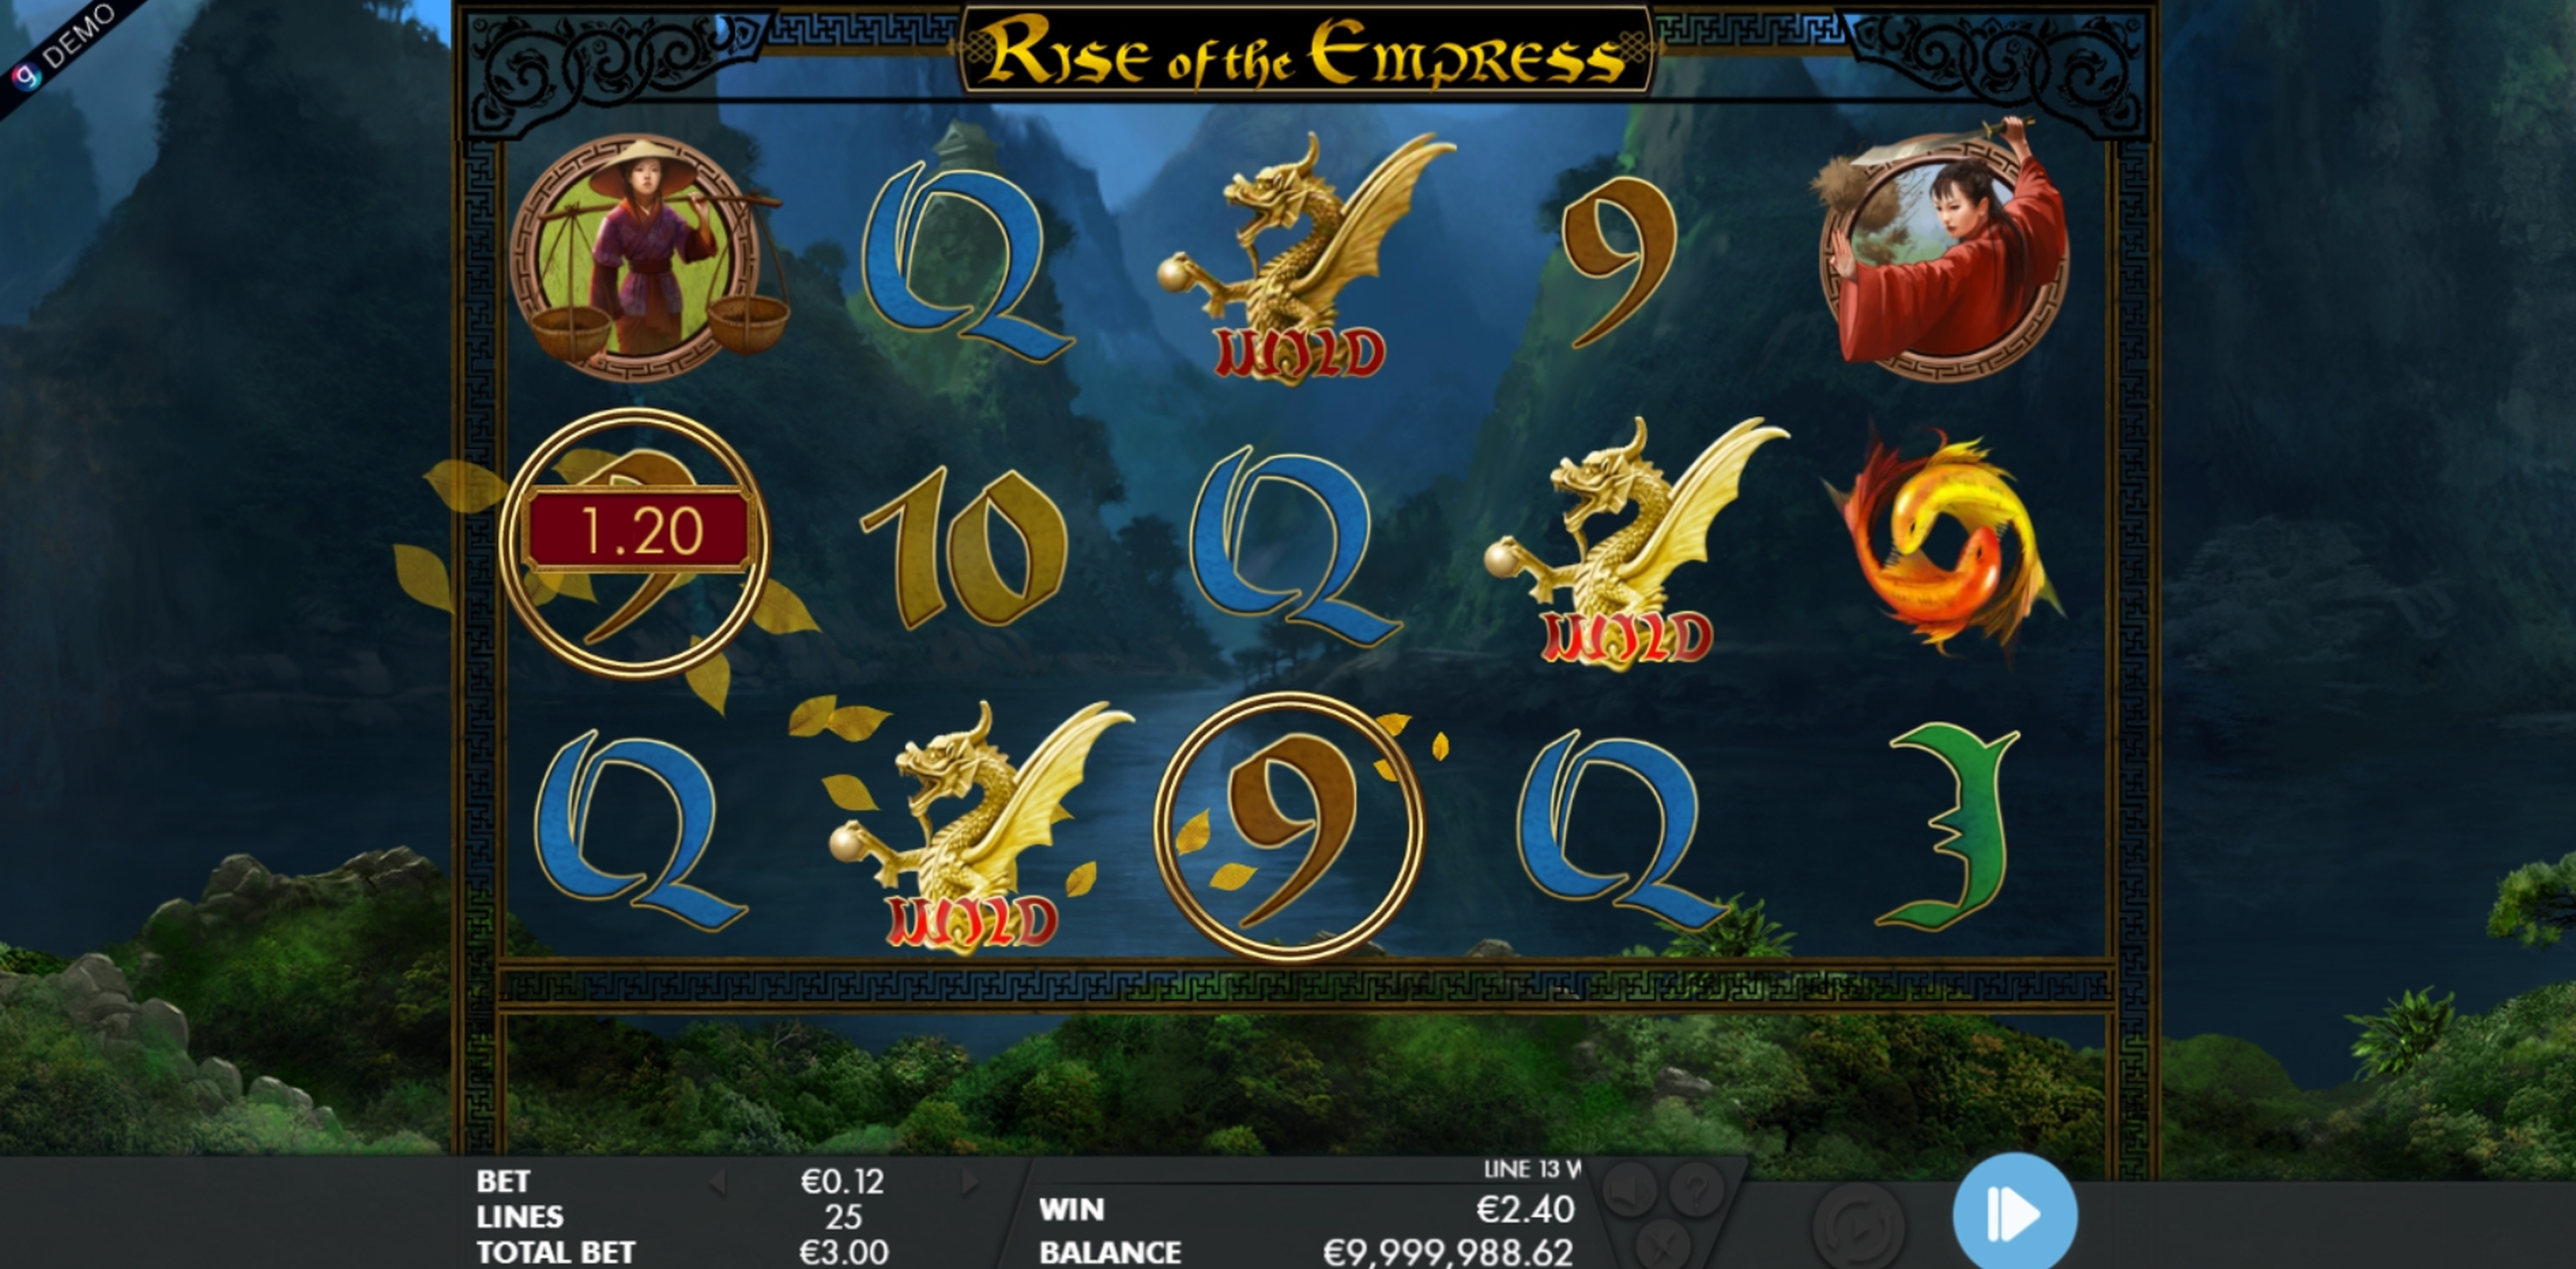 Planet 7 casino coupons